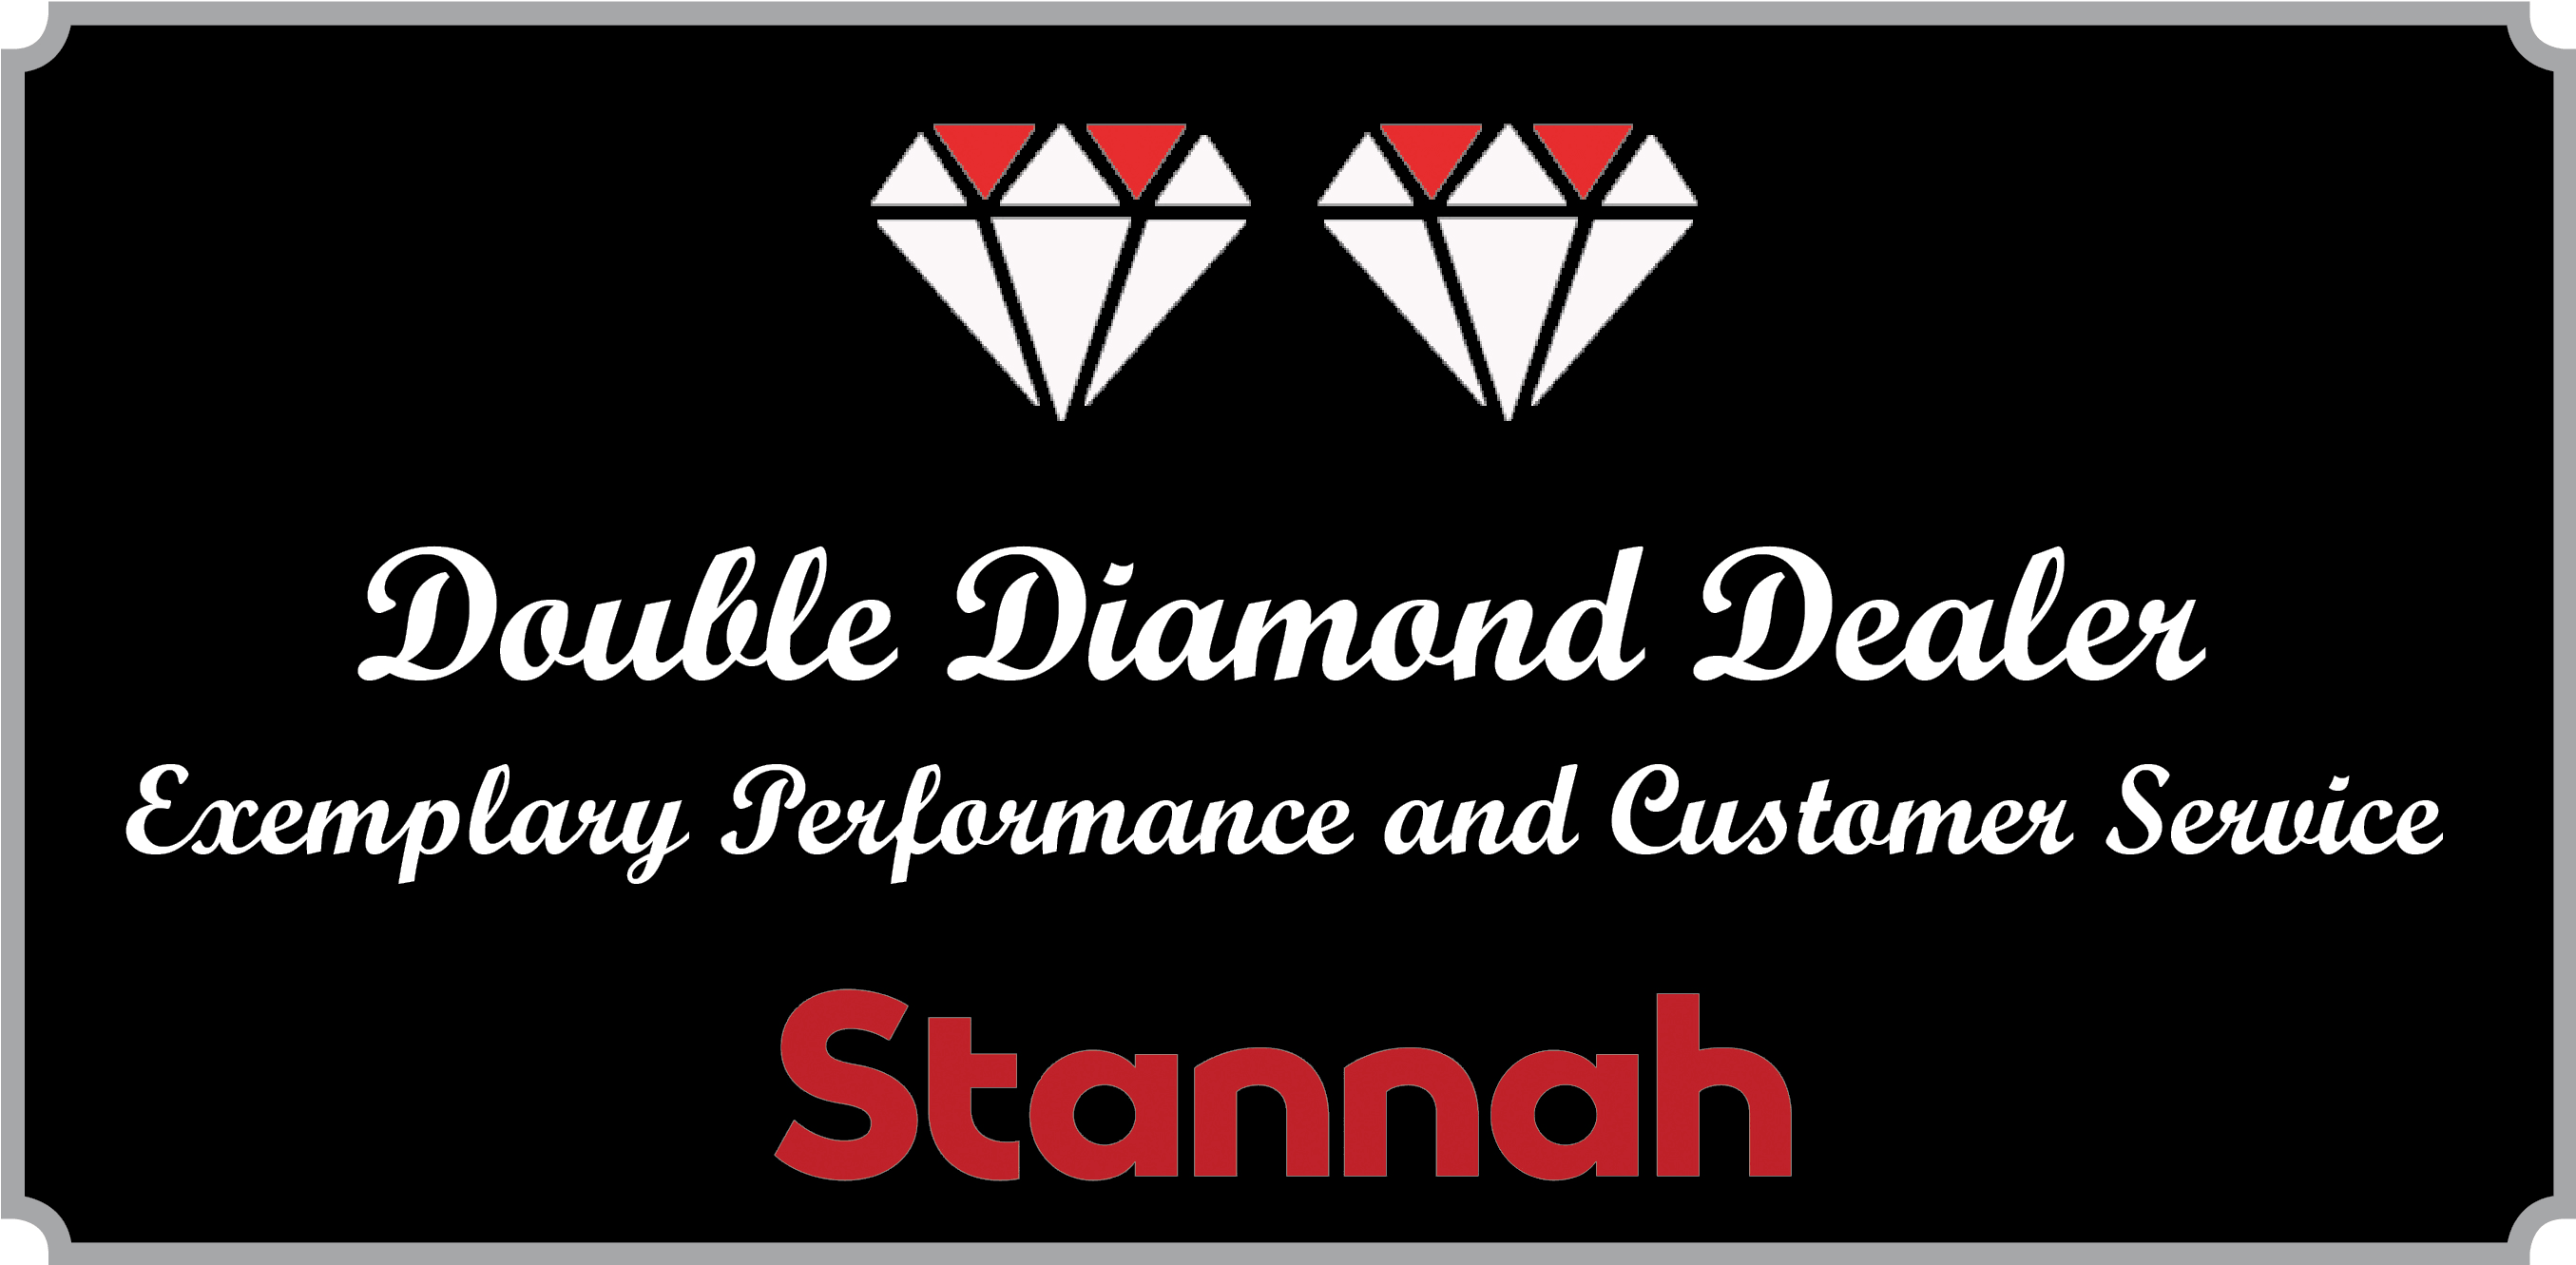 Double Diamond Award by Stannah